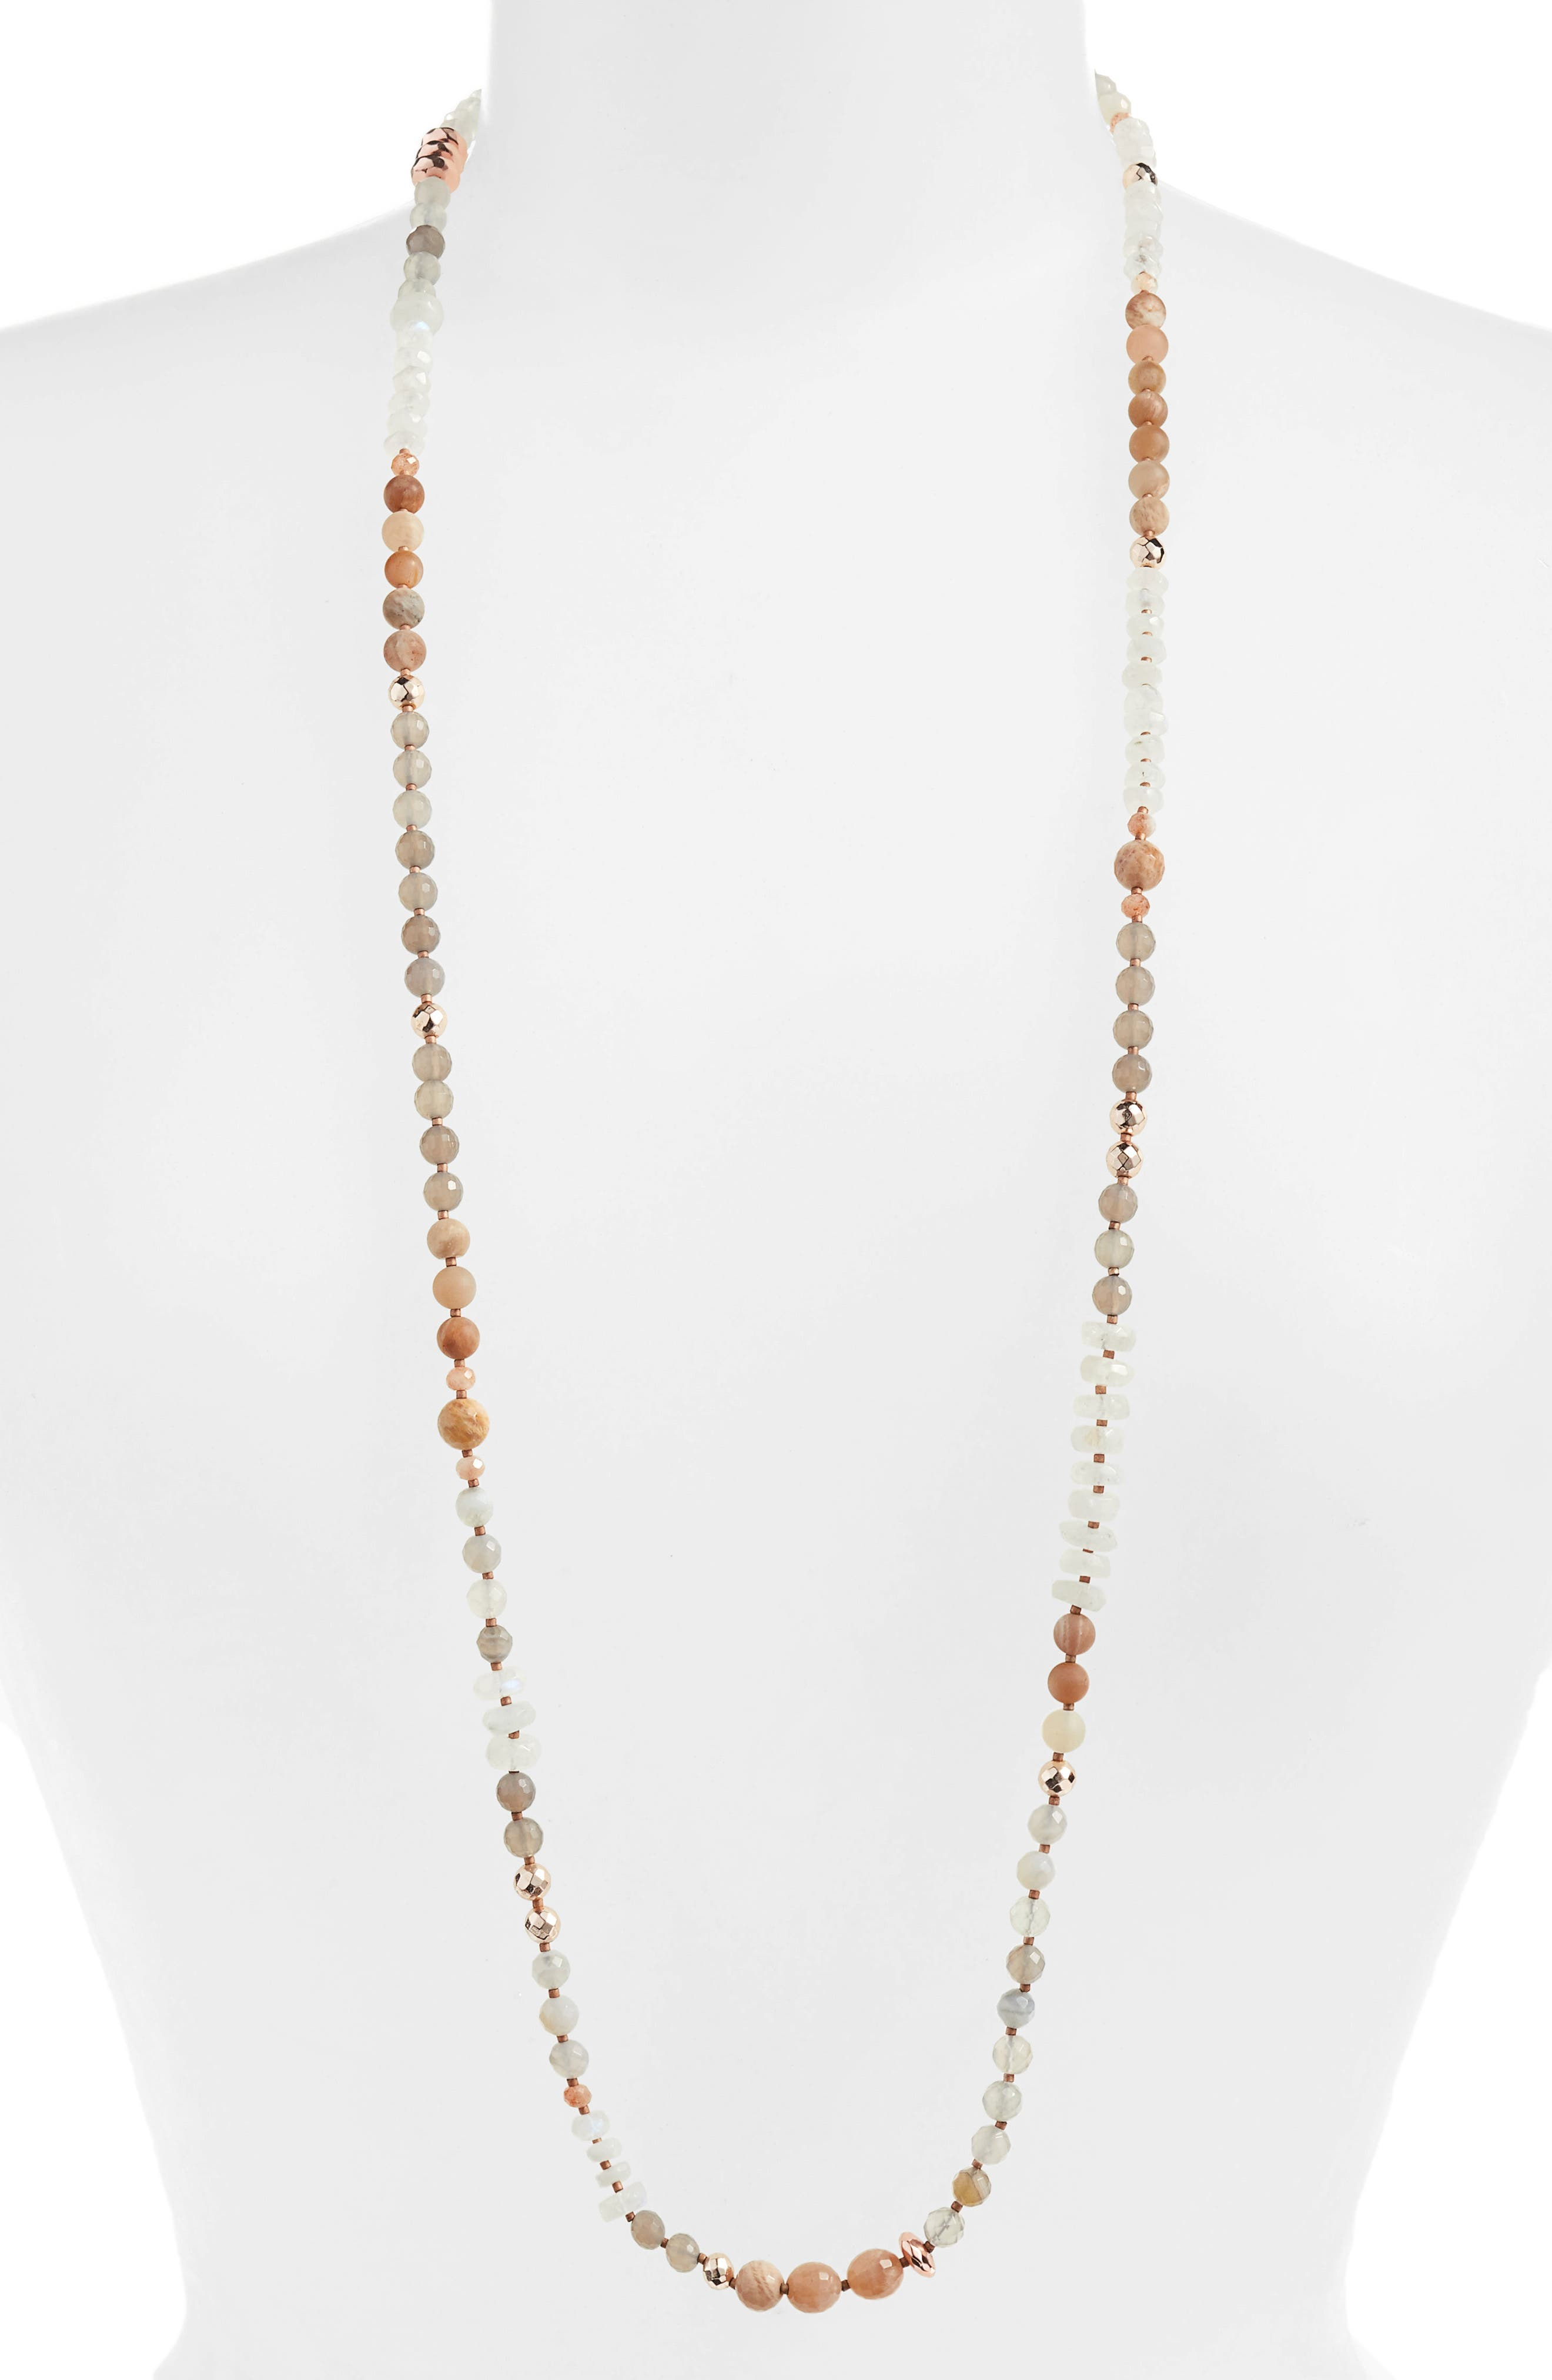 Moonstone Mix Beaded Necklace,                             Main thumbnail 1, color,                             MOONSTONE MIX